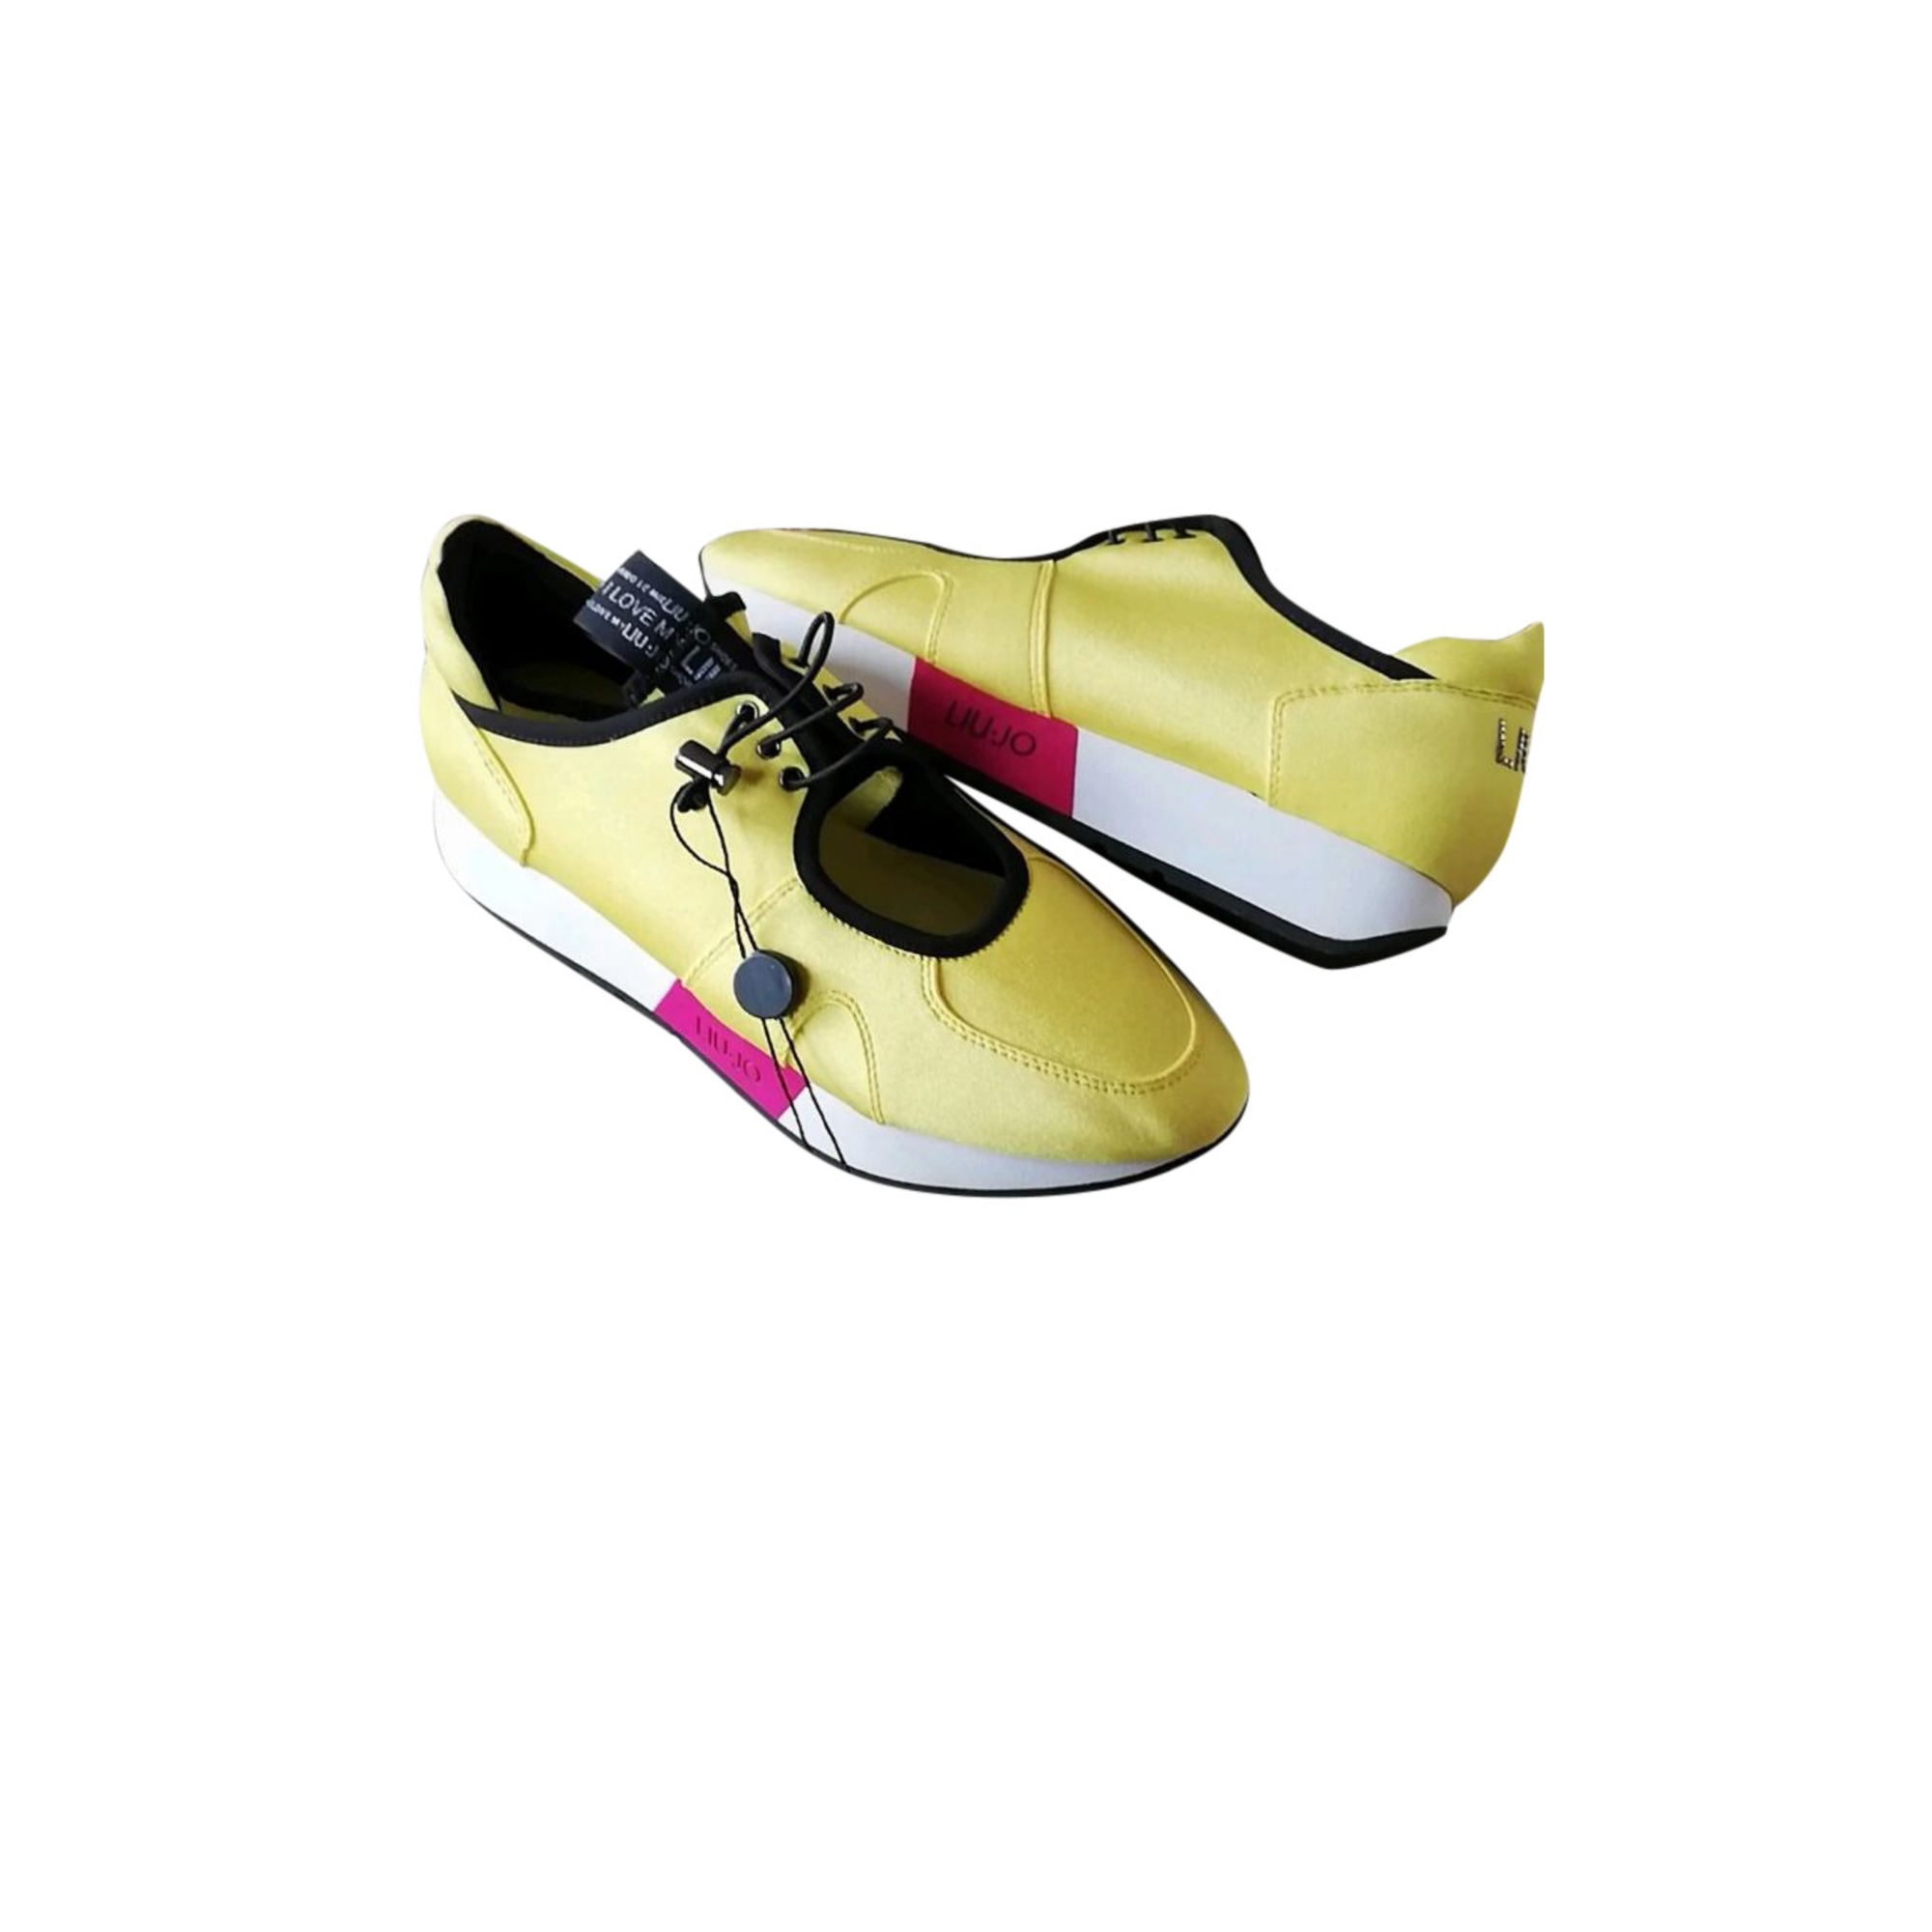 Sneakers LIU JO Yellow